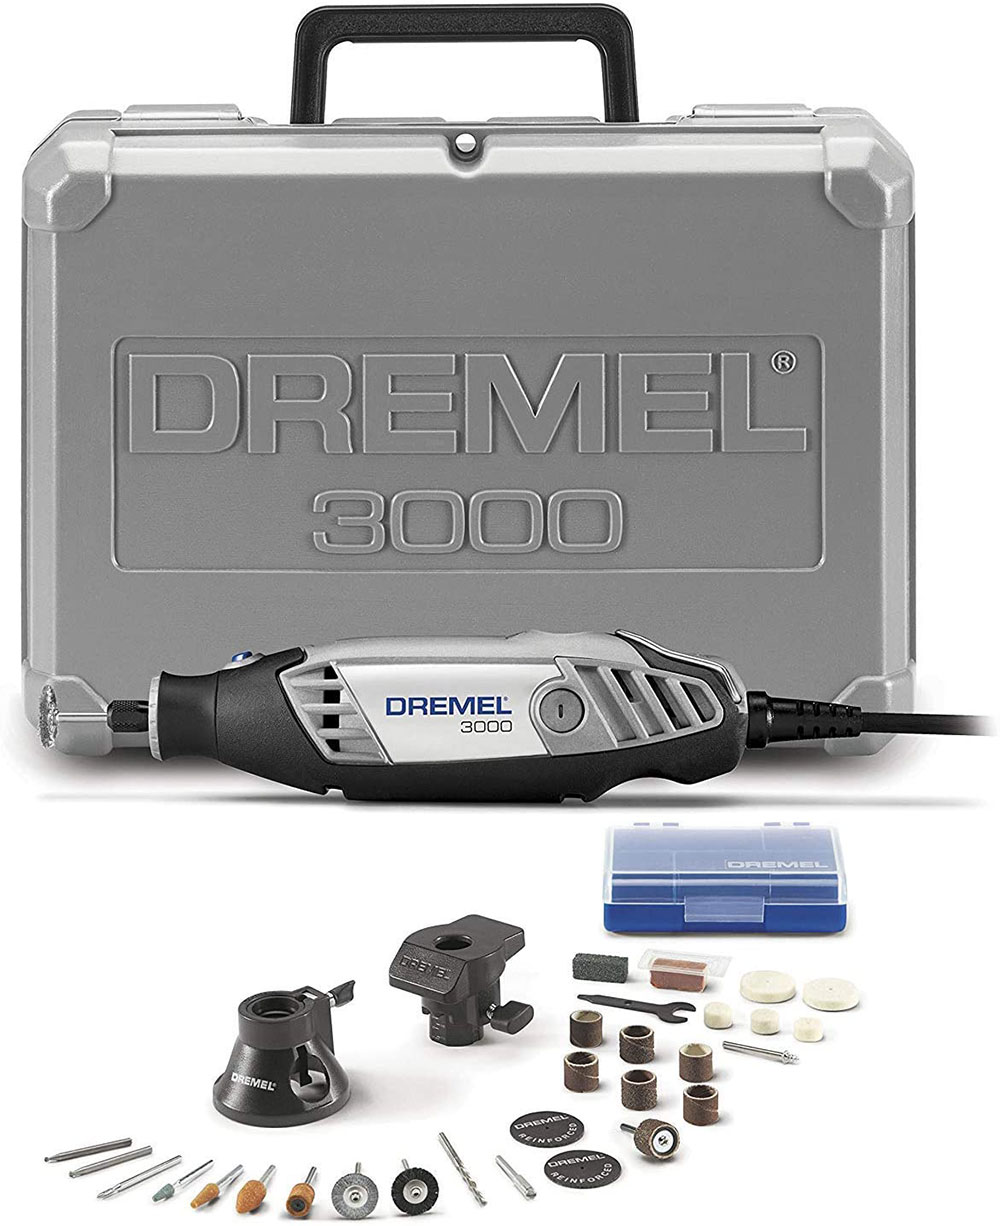 Dremel-3000 The best grout removal tool you can get from Amazon